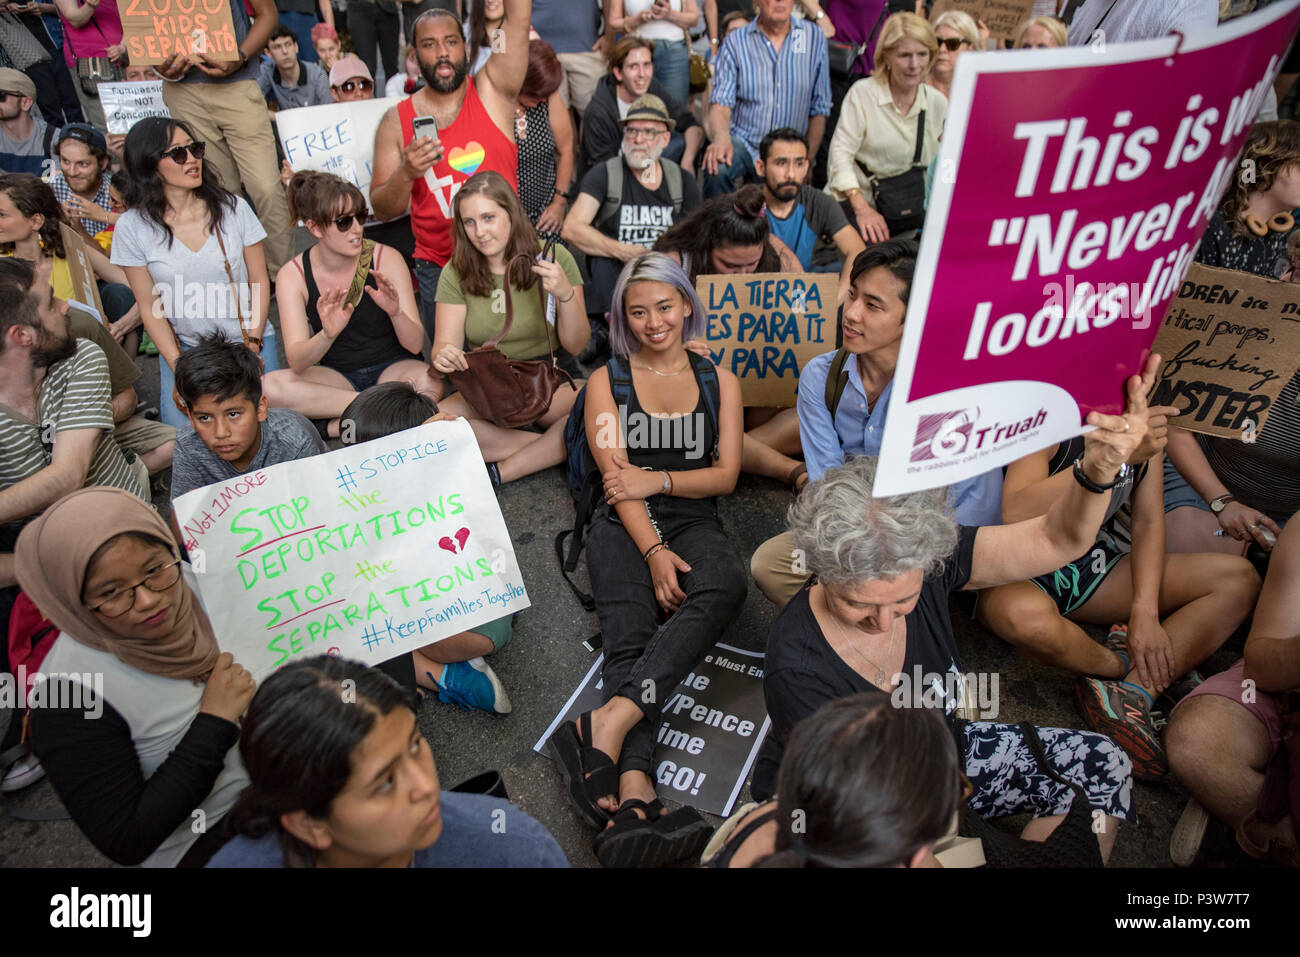 Philadelphia, Pennsylvania, USA. June 19 2018. Hundreds protested the arrival of Vice President Mike Pence at Rittenhouse Square demanding an end to forced separation of families at the southern border. Credit: Chris Baker Evens. Credit: Christopher Evens/Alamy Live News - Stock Image